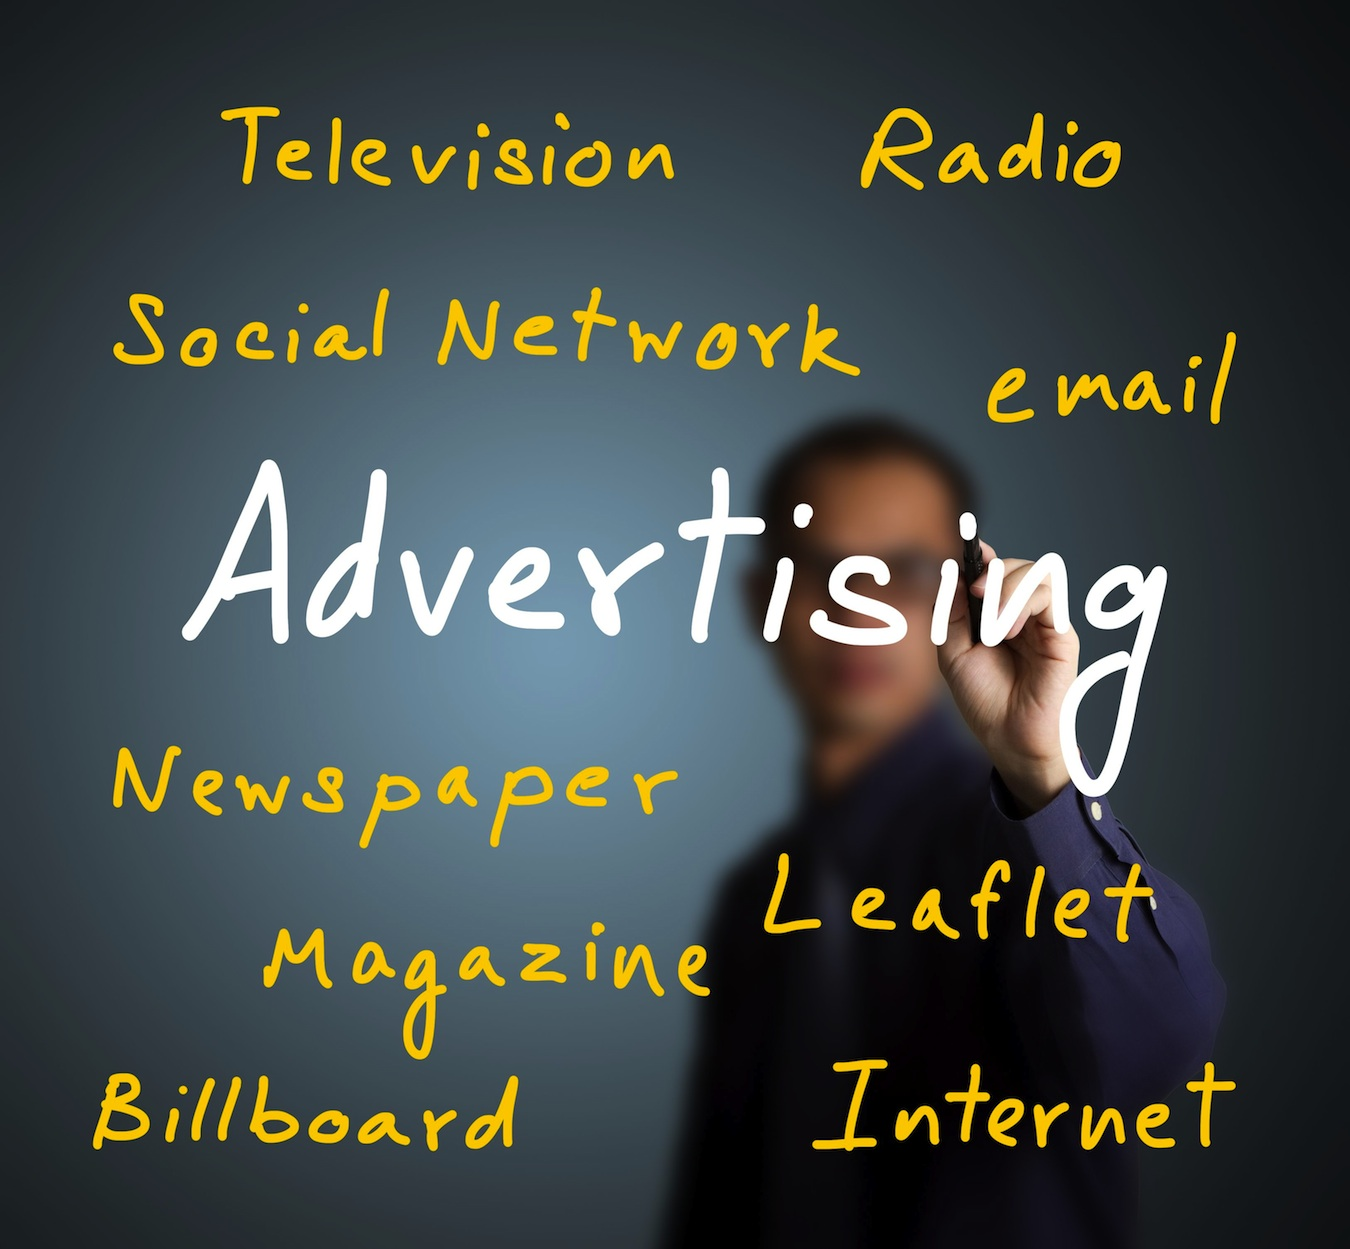 advertising in the media essay Essay about the effects of advertising and media on society - the effects of advertising and media on society advertising is an important social phenomenon it both stimulates consumption, economic activity models, life-styles and a certain value orientation.